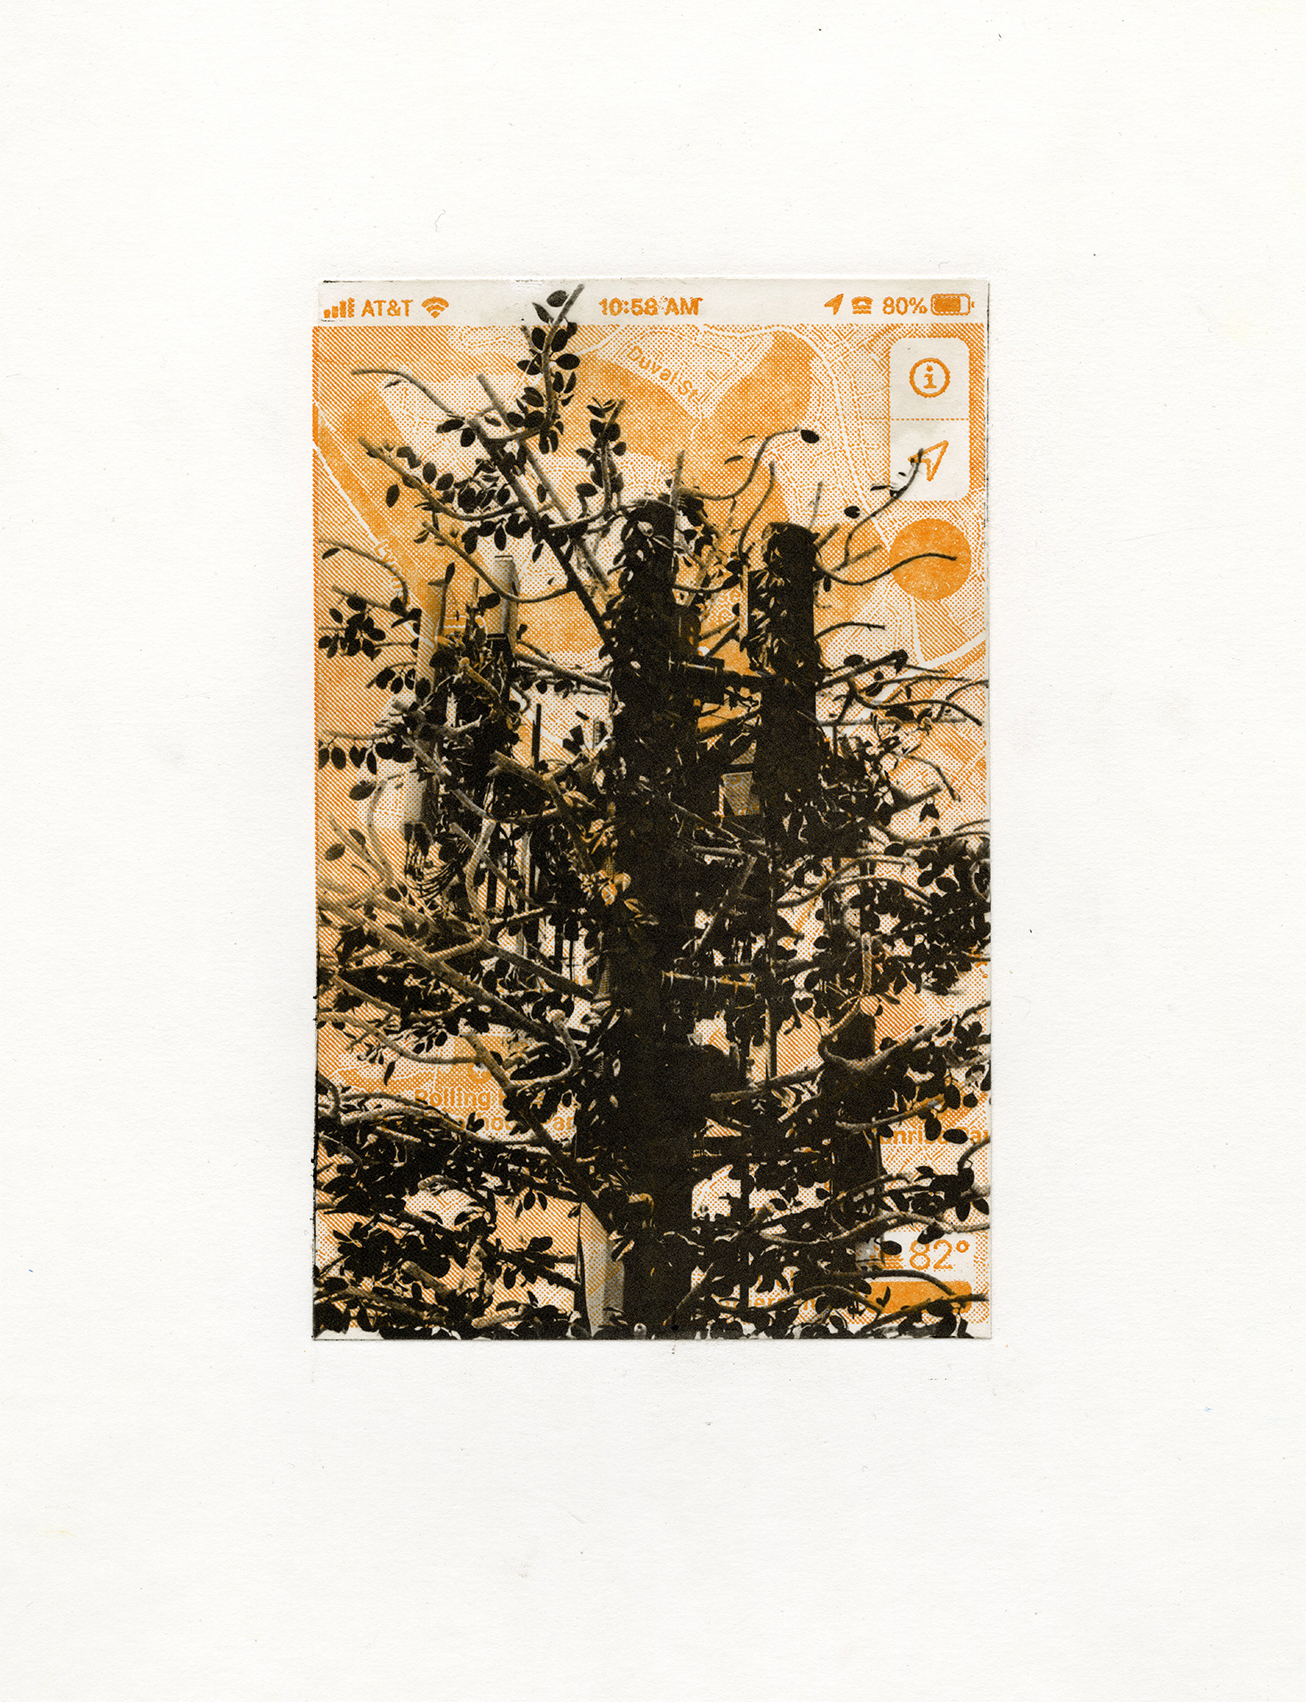 Mary V Marsh, here hear Valley Oak map, photopolymer gravure and letterpress, 15 x 11 in, 2020